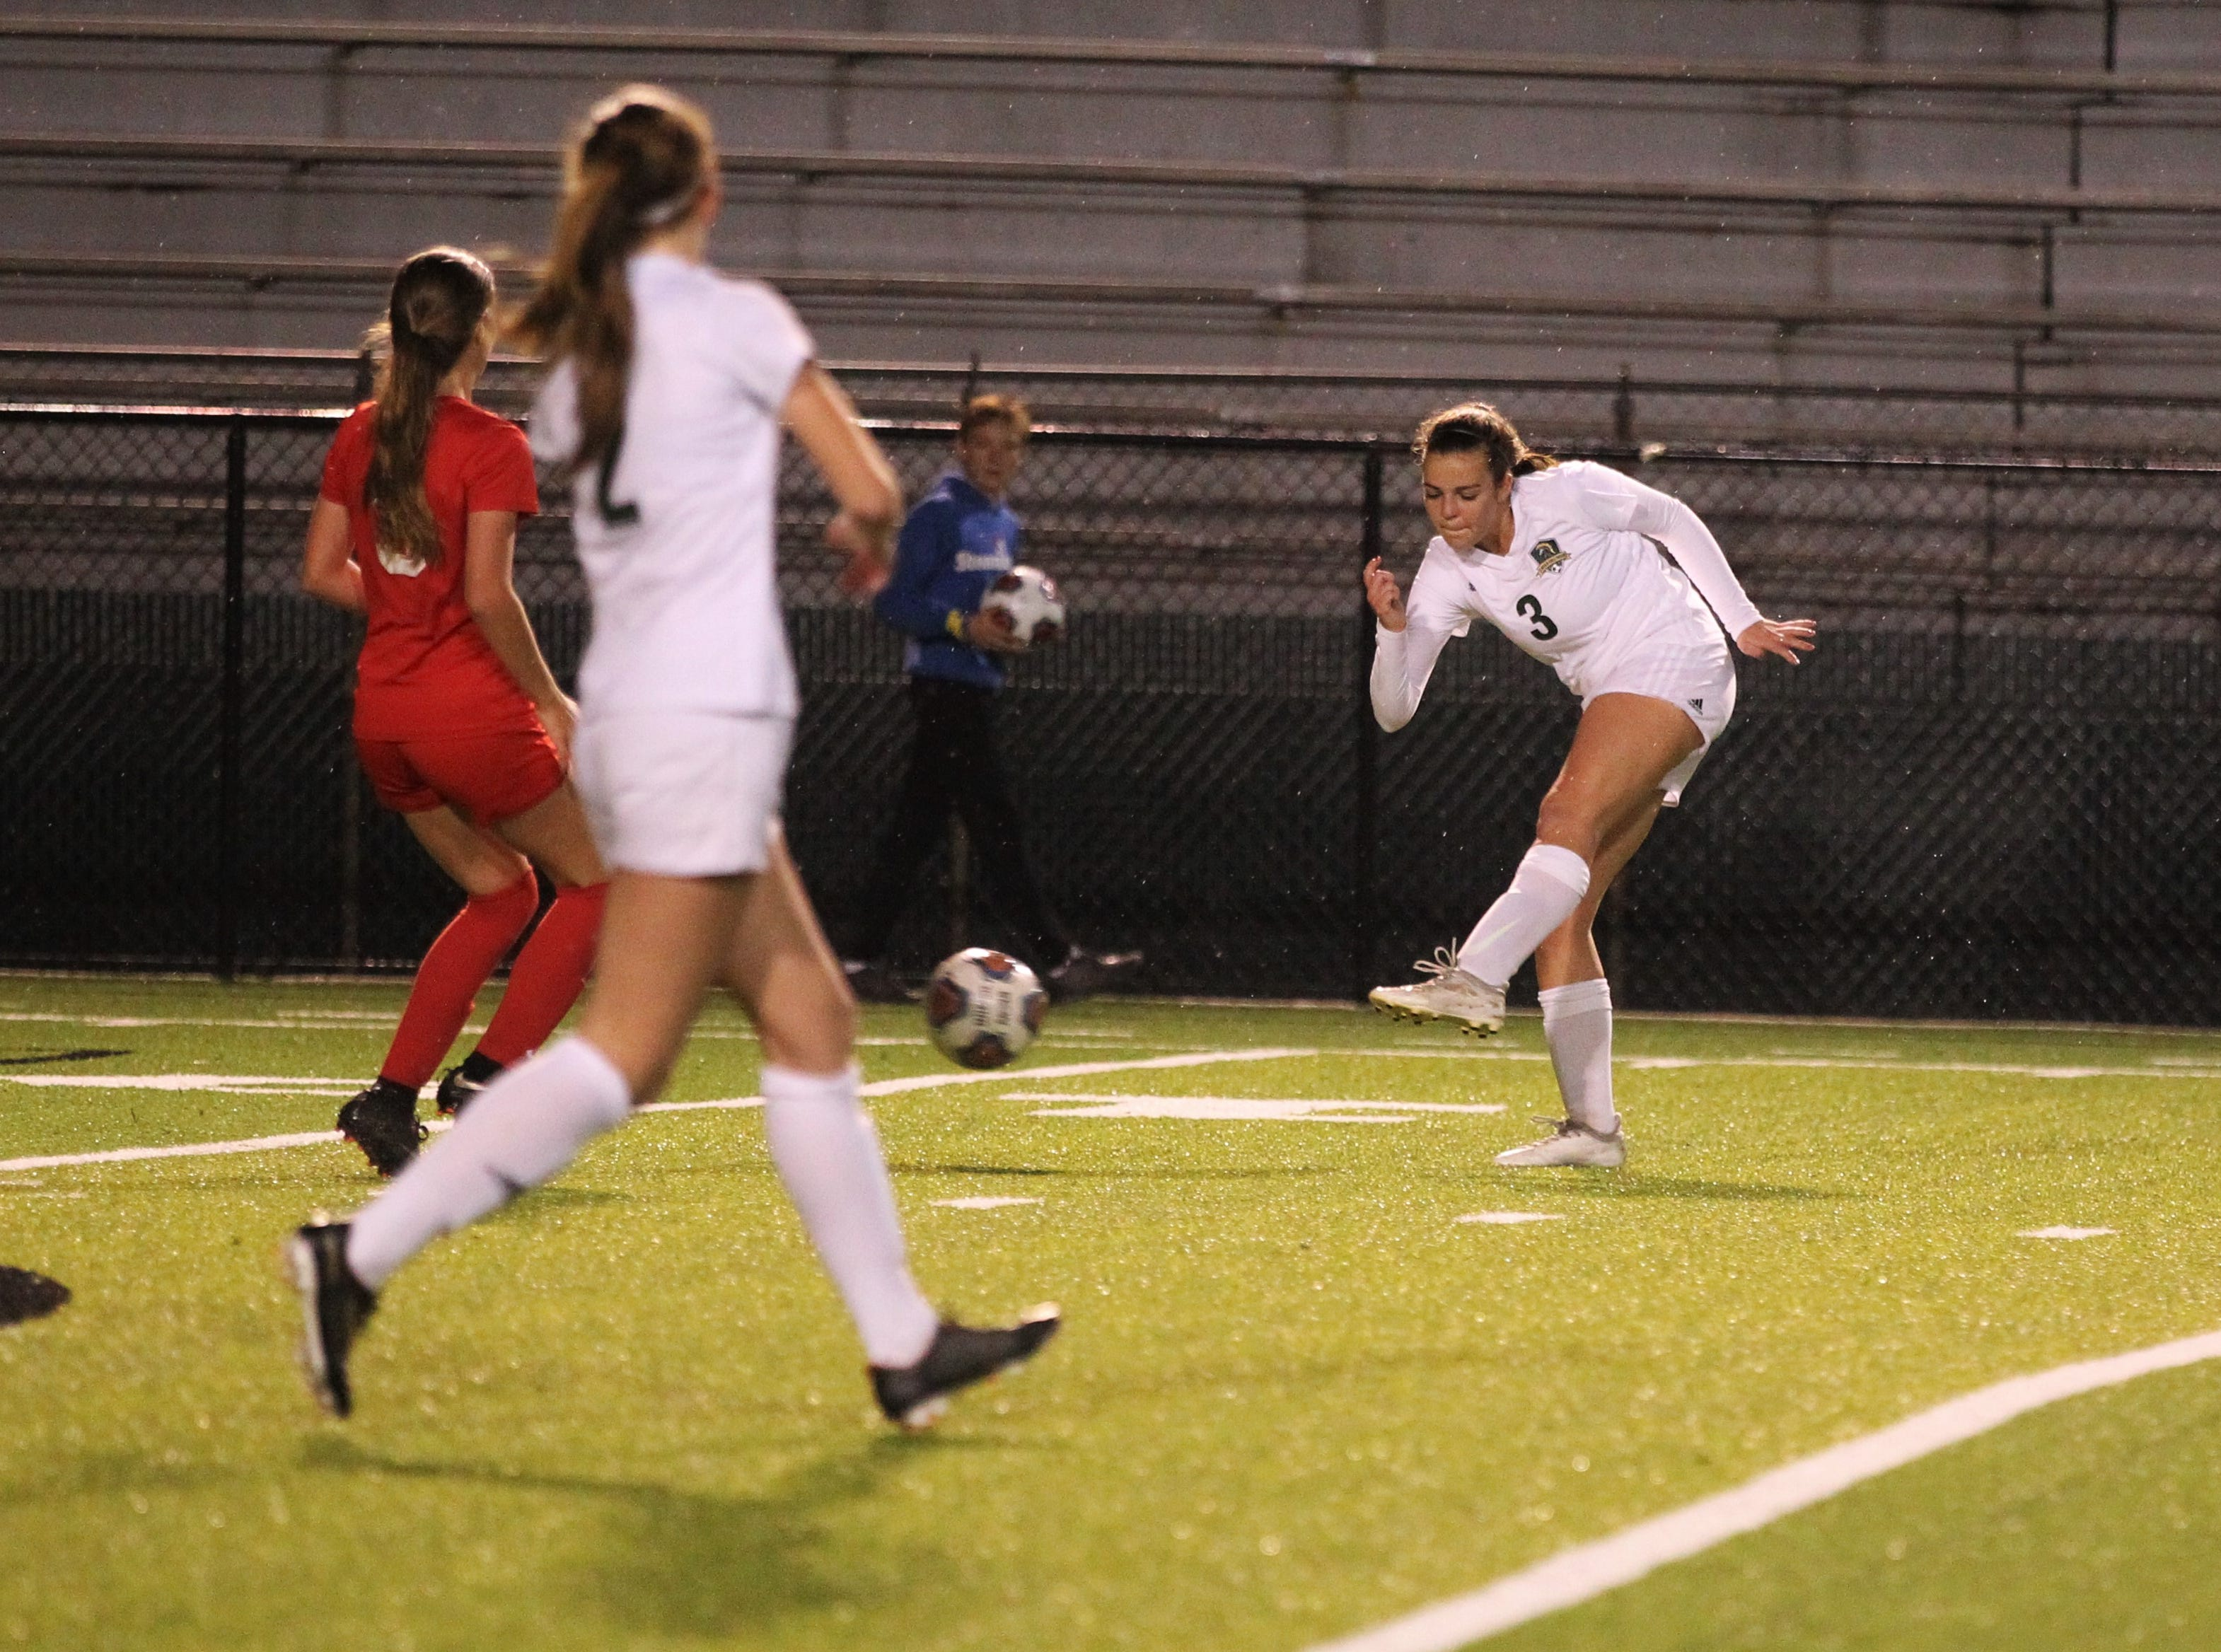 Lincoln's Kailey Williams takes a shot as Leon's girls soccer team beat Lincoln in the District 2-4A championship on Feb. 1, 2019.